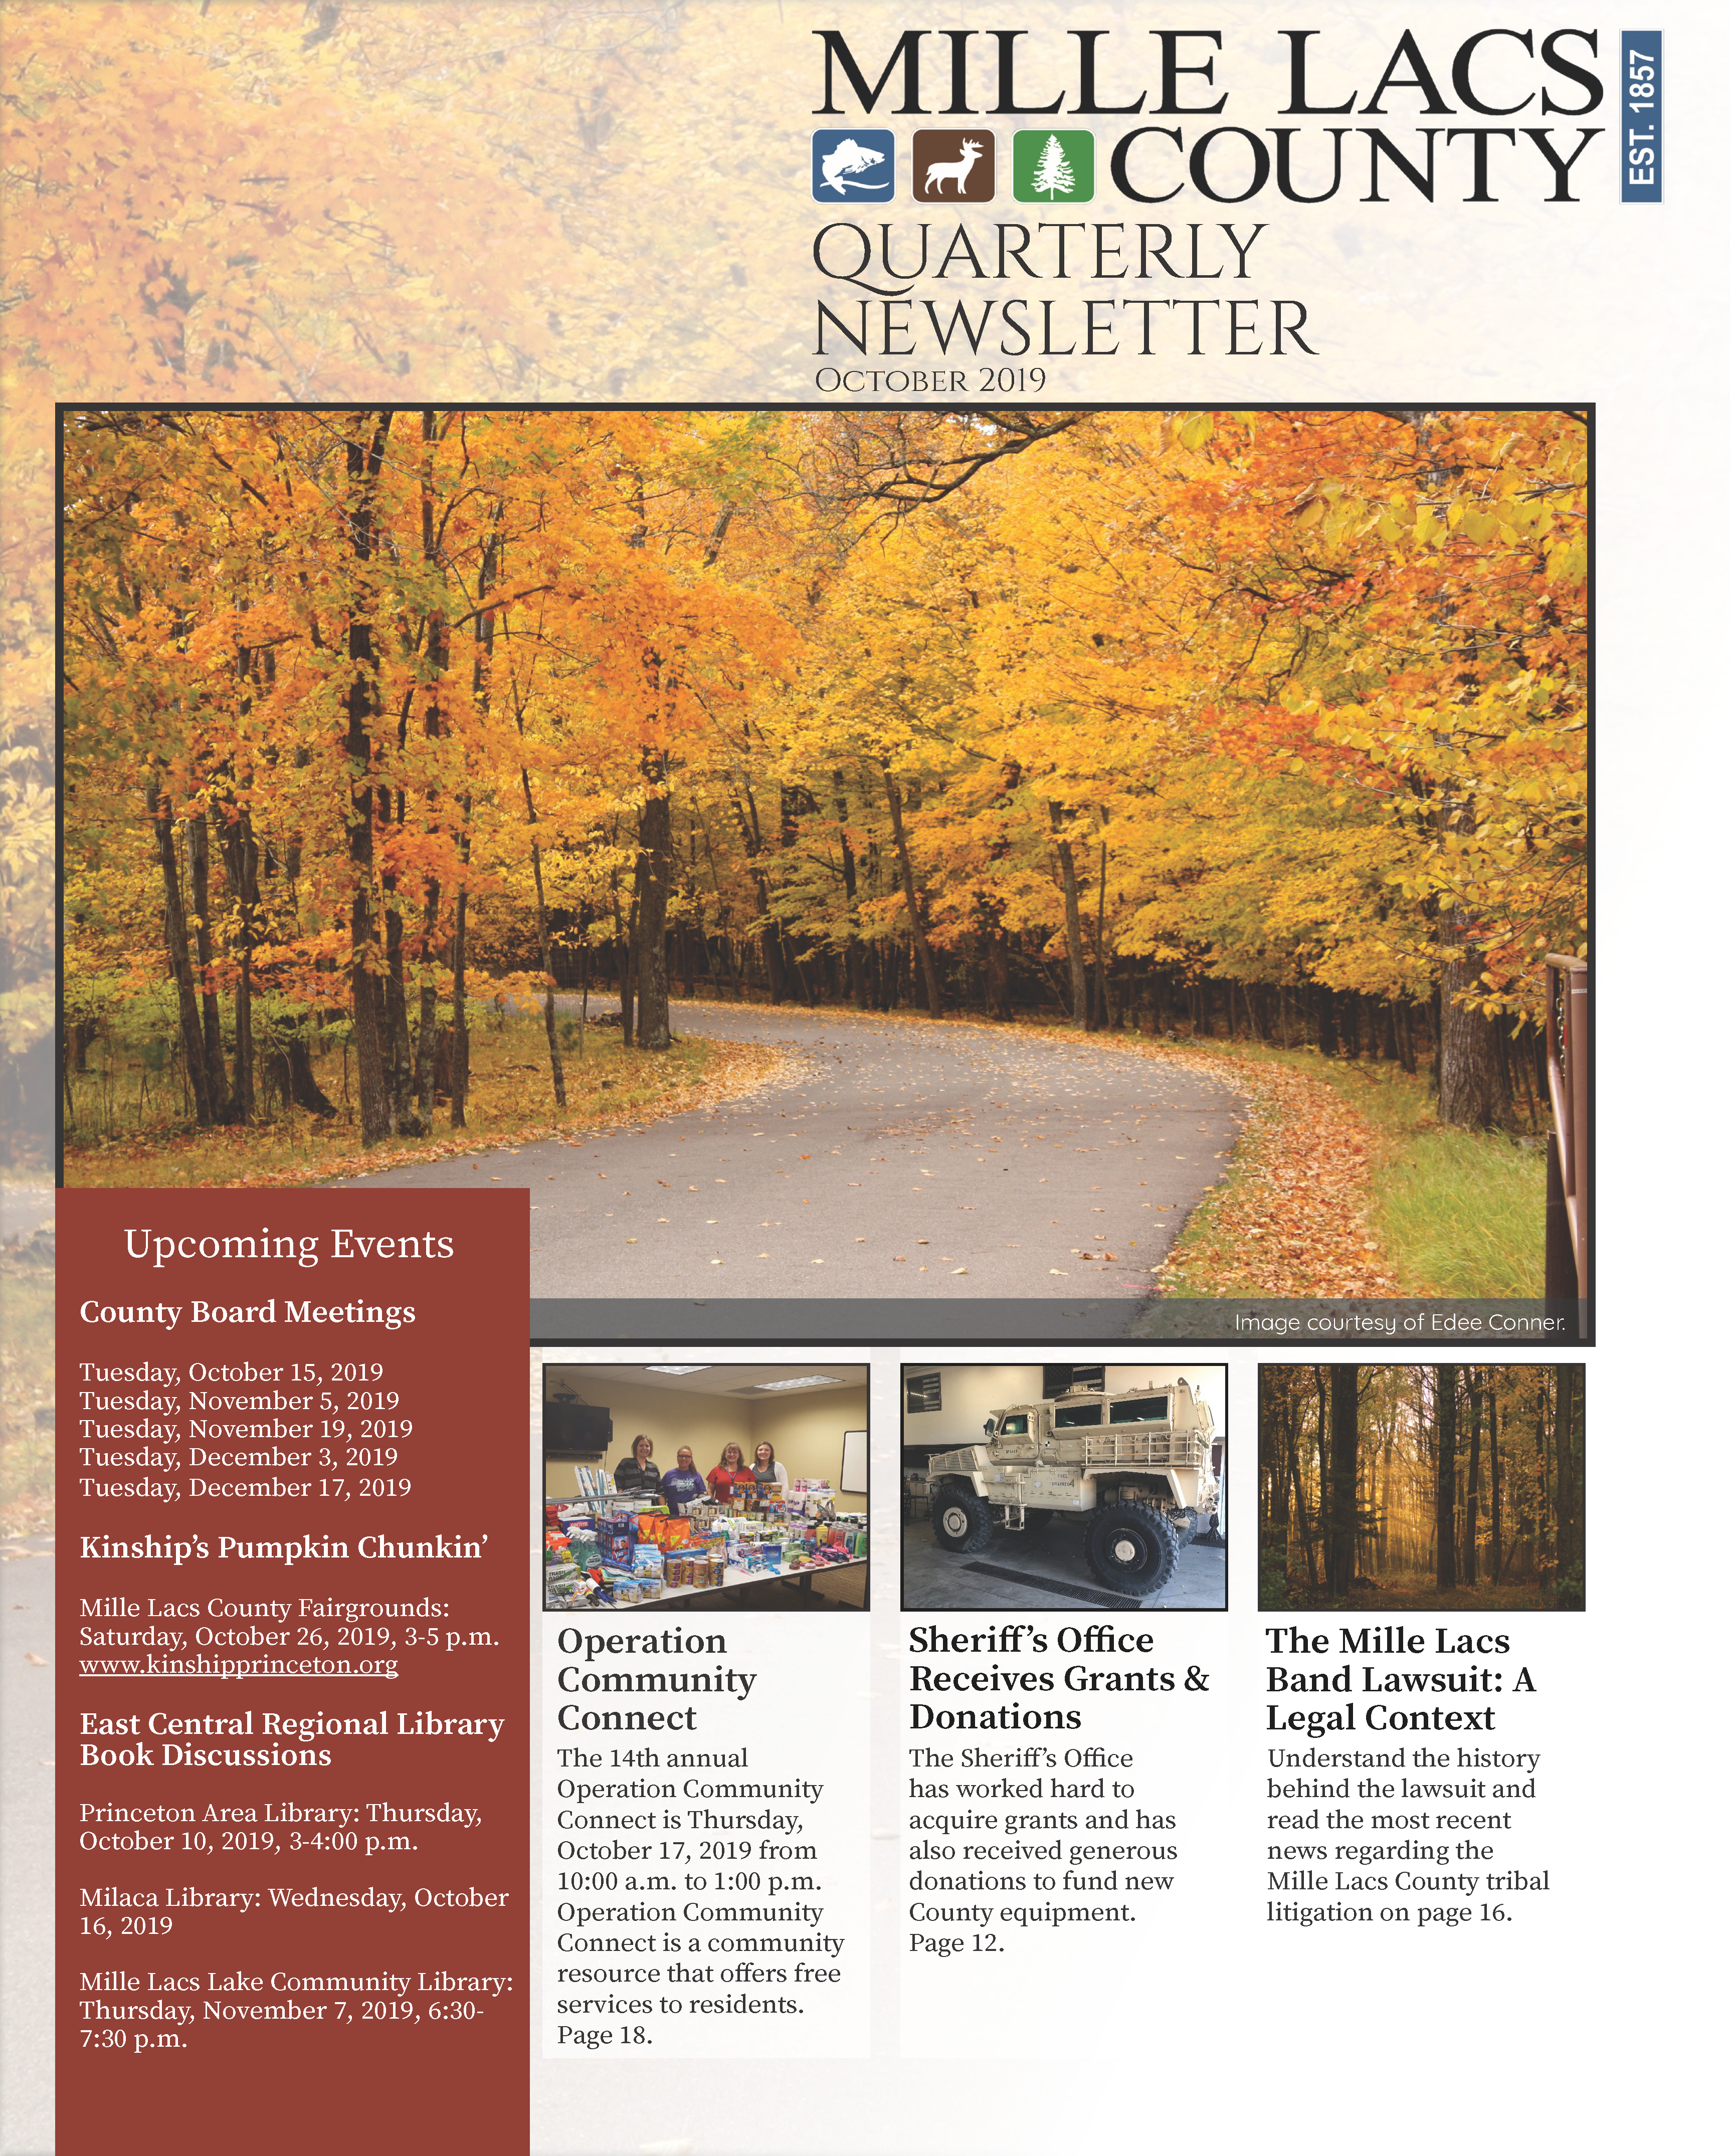 Mille Lacs County Quarterly Newsletter: October 2019 Cover